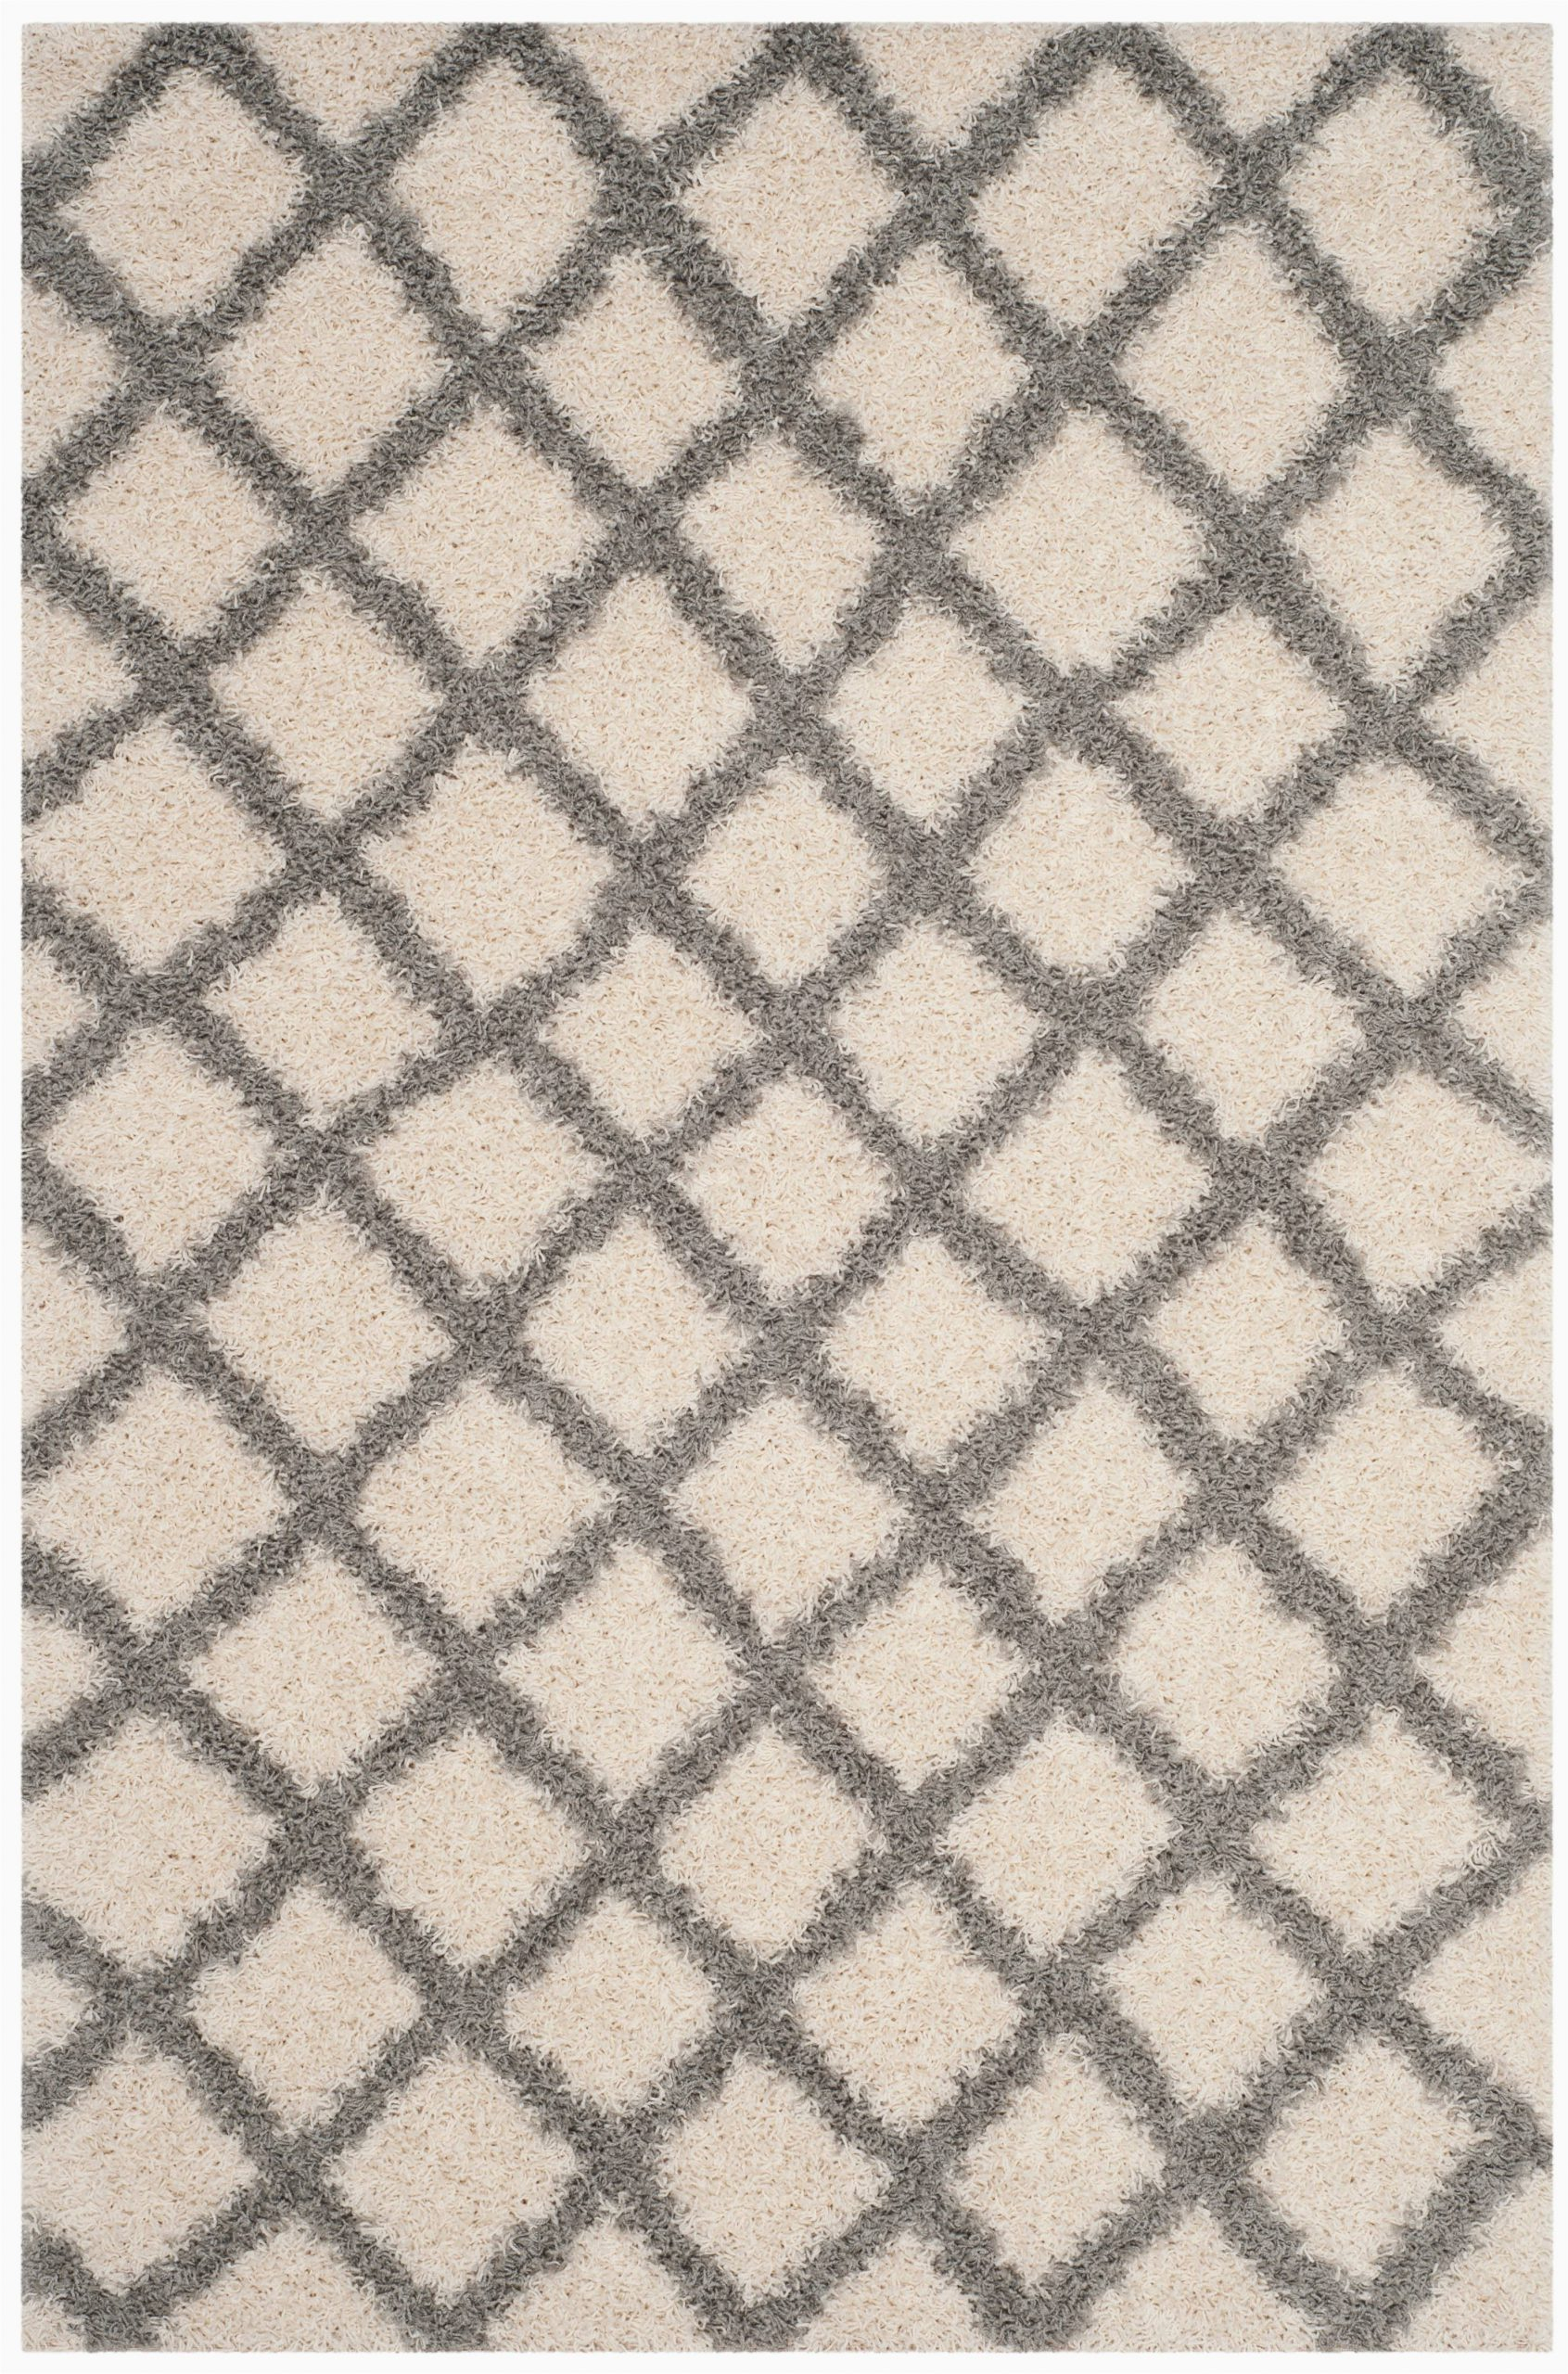 Safavieh Daley Geometric Plush Shag area Rug Safavieh Layla Geometric Plush Shag area Rug or Runner